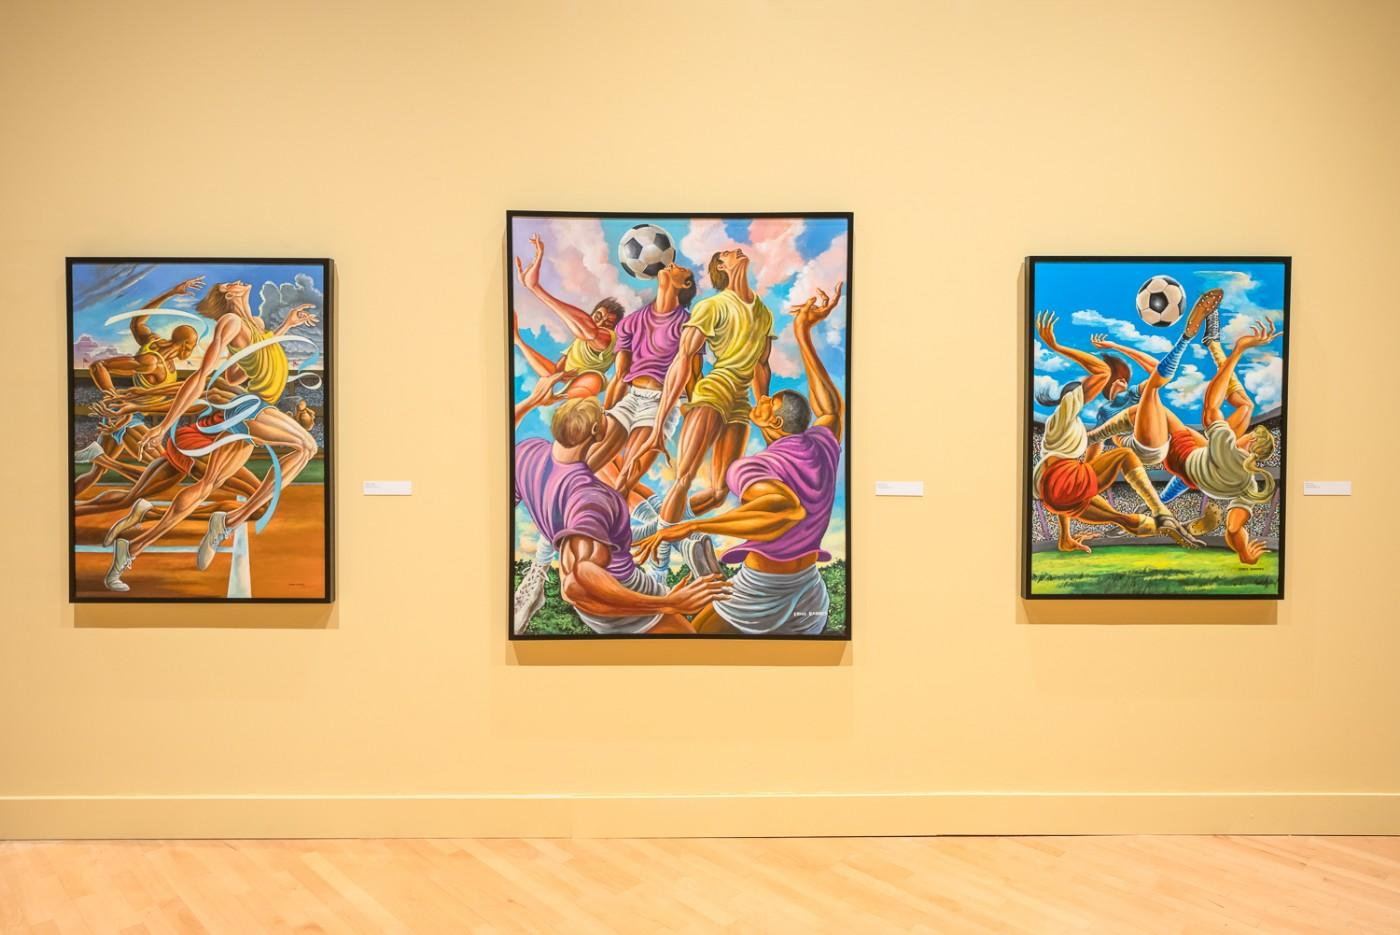 Ernie Barnes: A Retrospective, installation view, at the California African American Museum